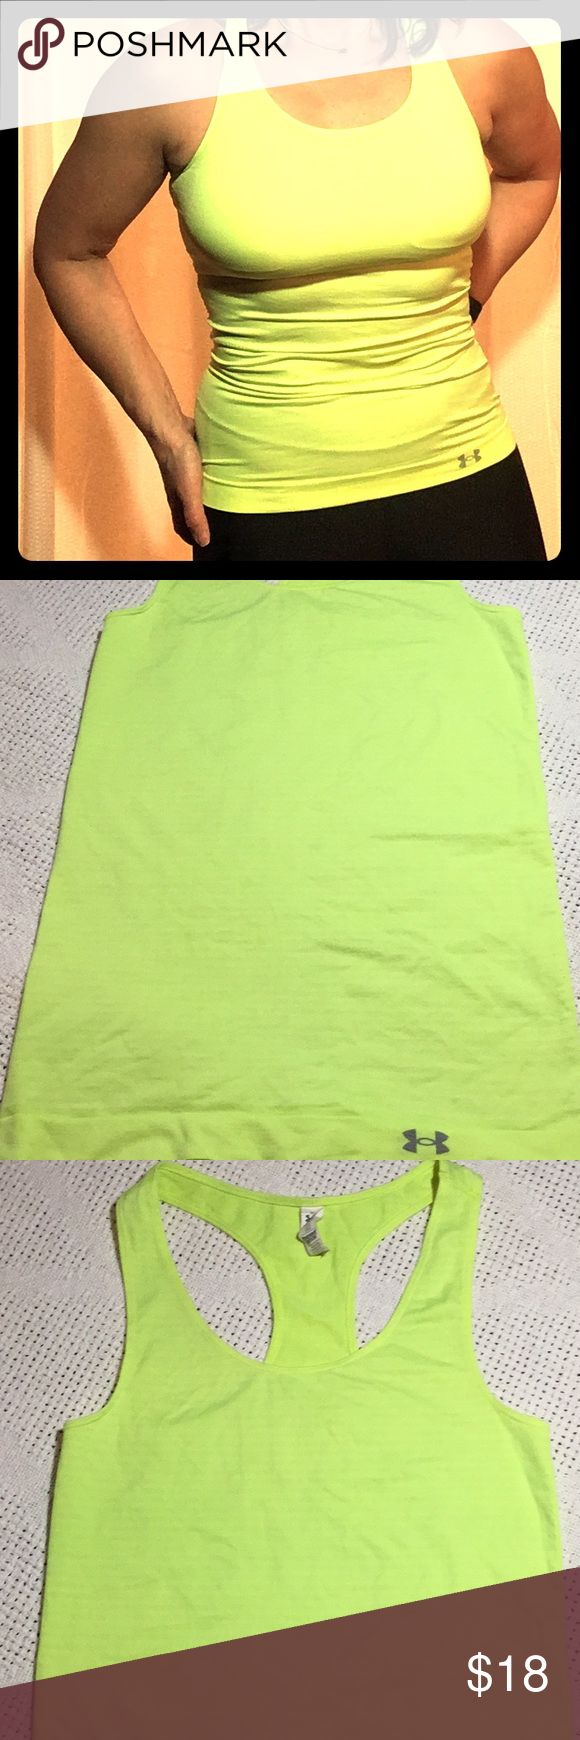 Under Armour Heatgear Fitted Tank Size XS Yellow In good condition.  Citron Racerback Under Armour Tank. When laid flat chest measures 12.5 inches and length measures 24.5 inches. Used item: pictures show any signs of wear or use. Bundle up!  Offers welcome! Under Armour Tops Tank Tops